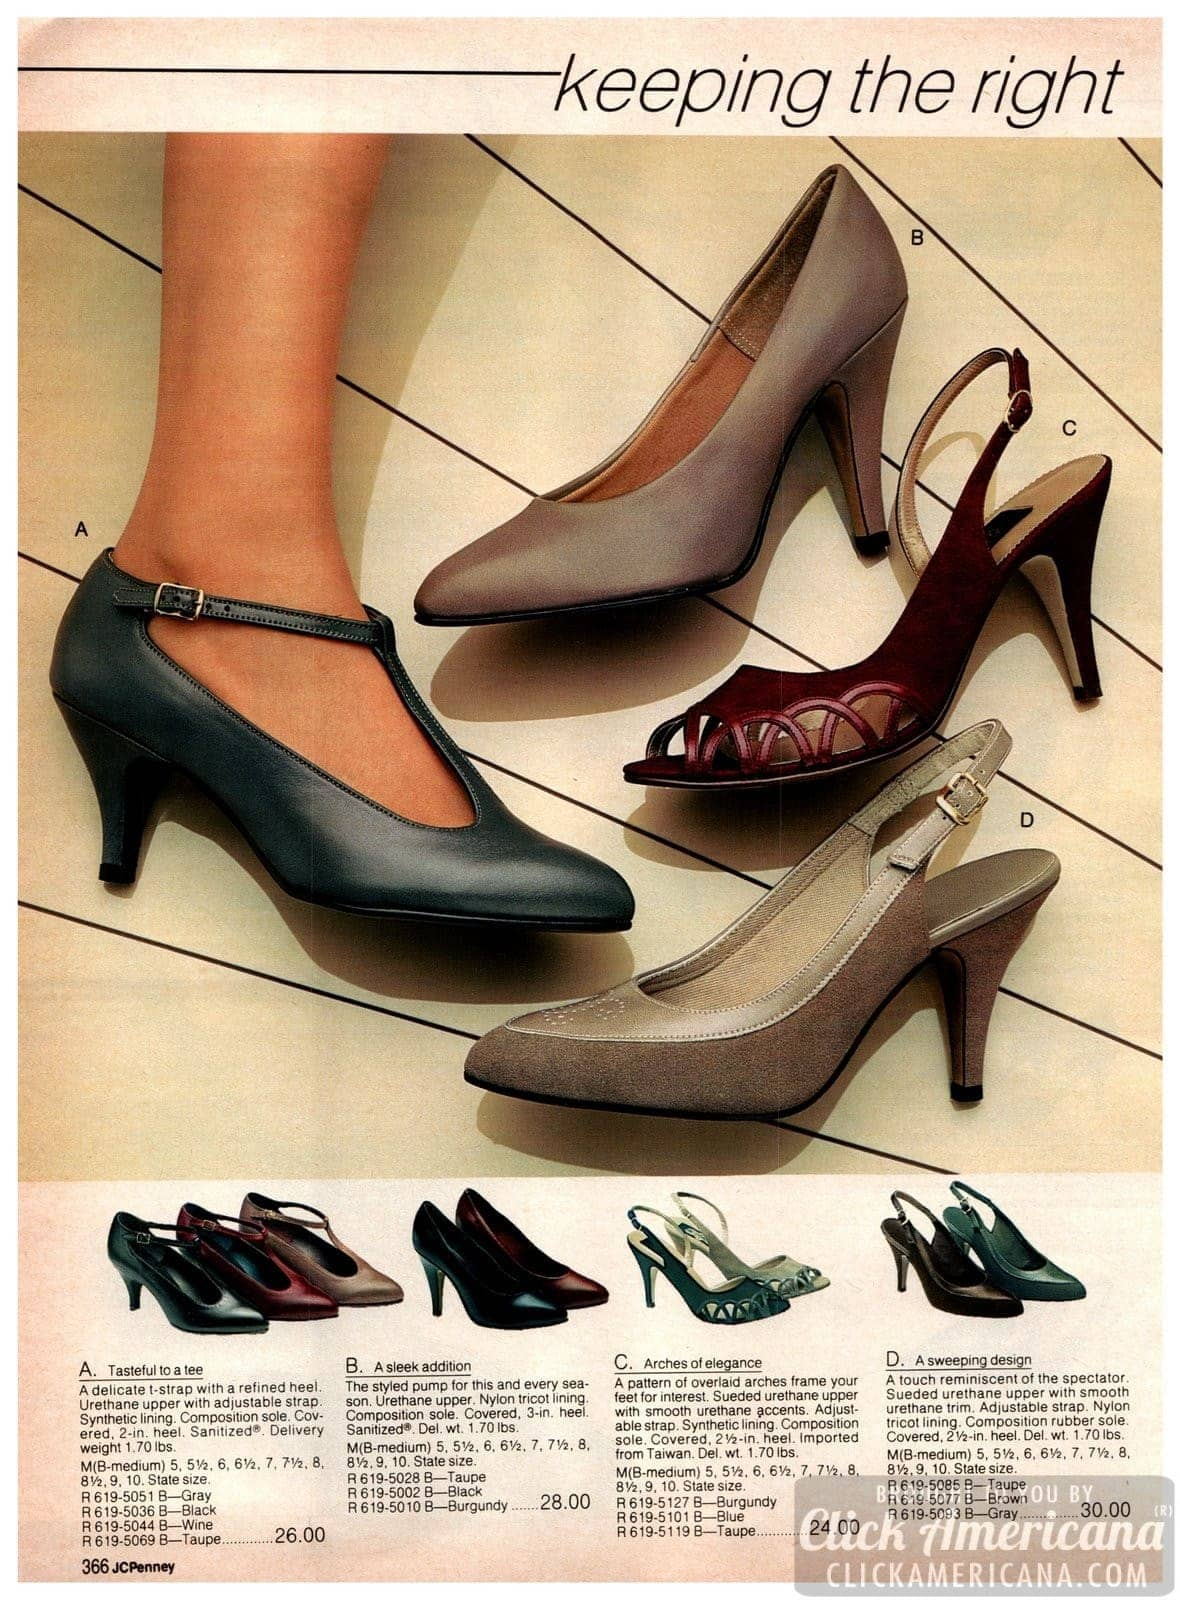 025b0360e4 '80s-style delicate T-strap with refined heel, styled pump and sueded. '